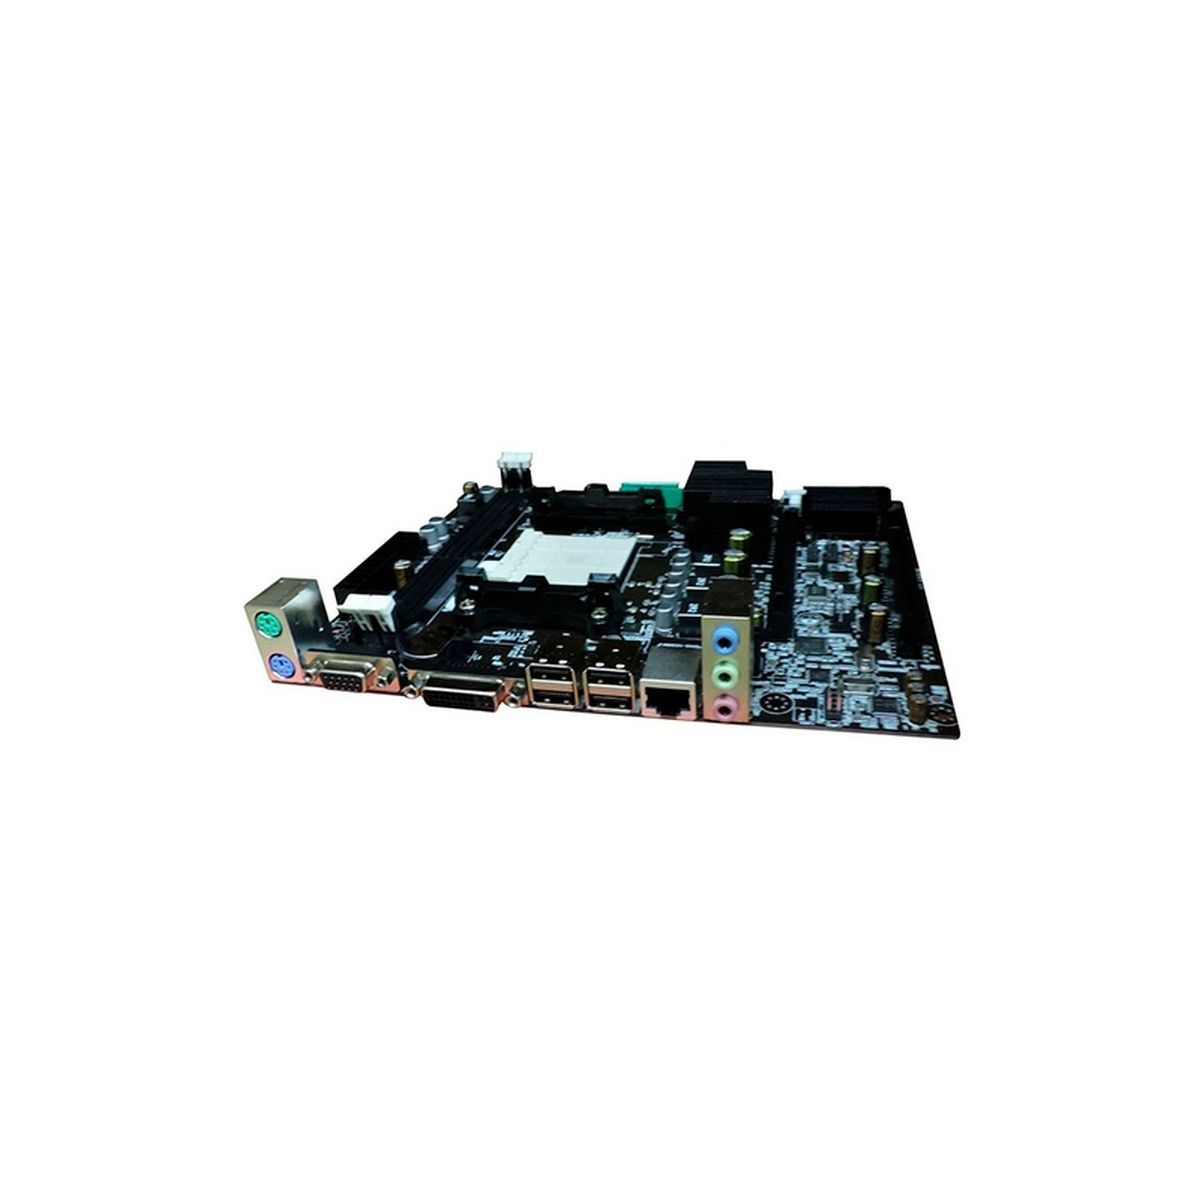 Placa Mãe brazil pc BPC-78LM3-M DDR3 AM2 SOM VIDEO REDE